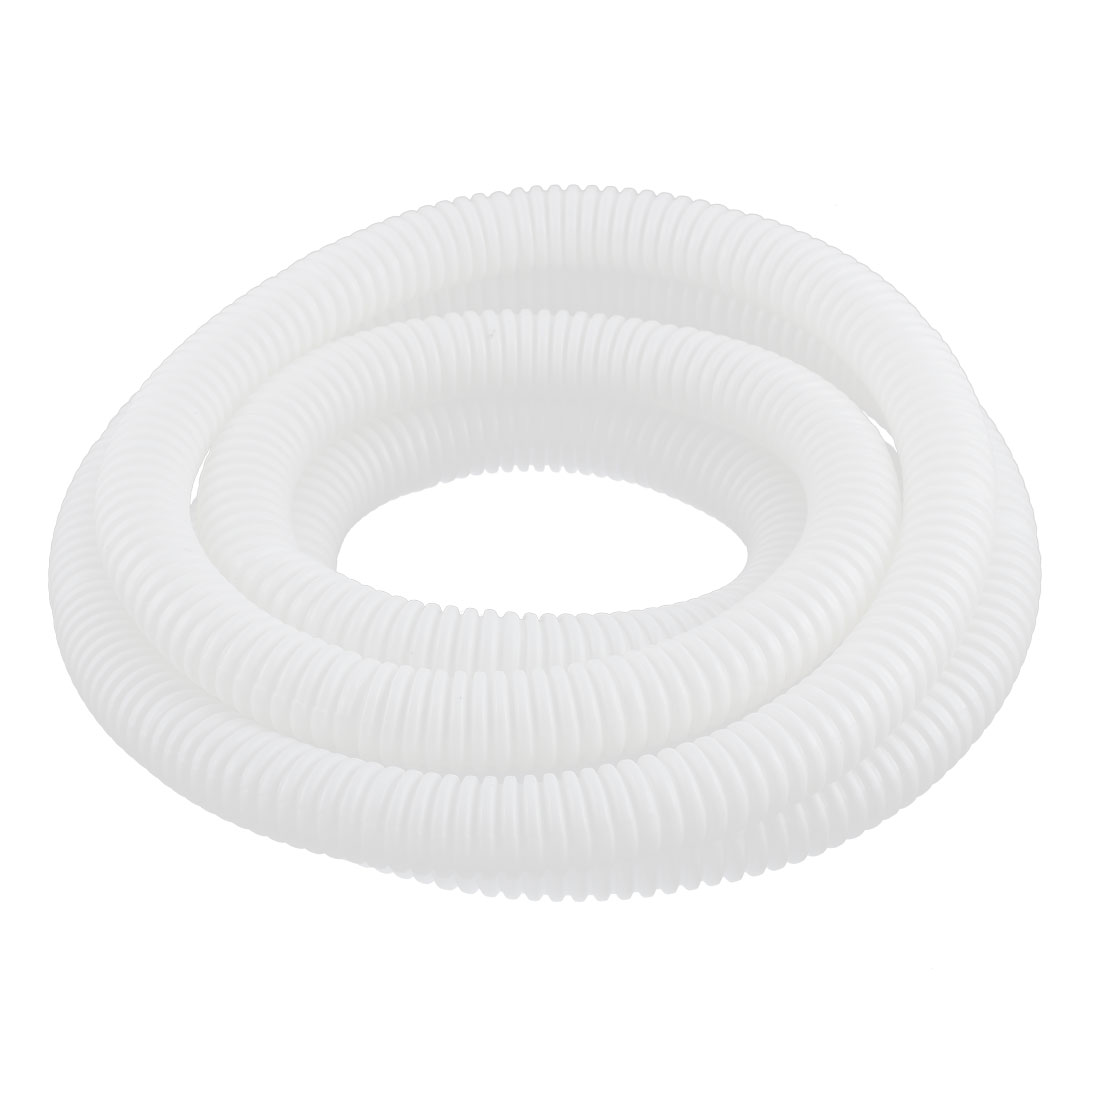 Flexible Corrugated Hose Tubing White 16x20mm 2.5M Long for Pond Pump Filter